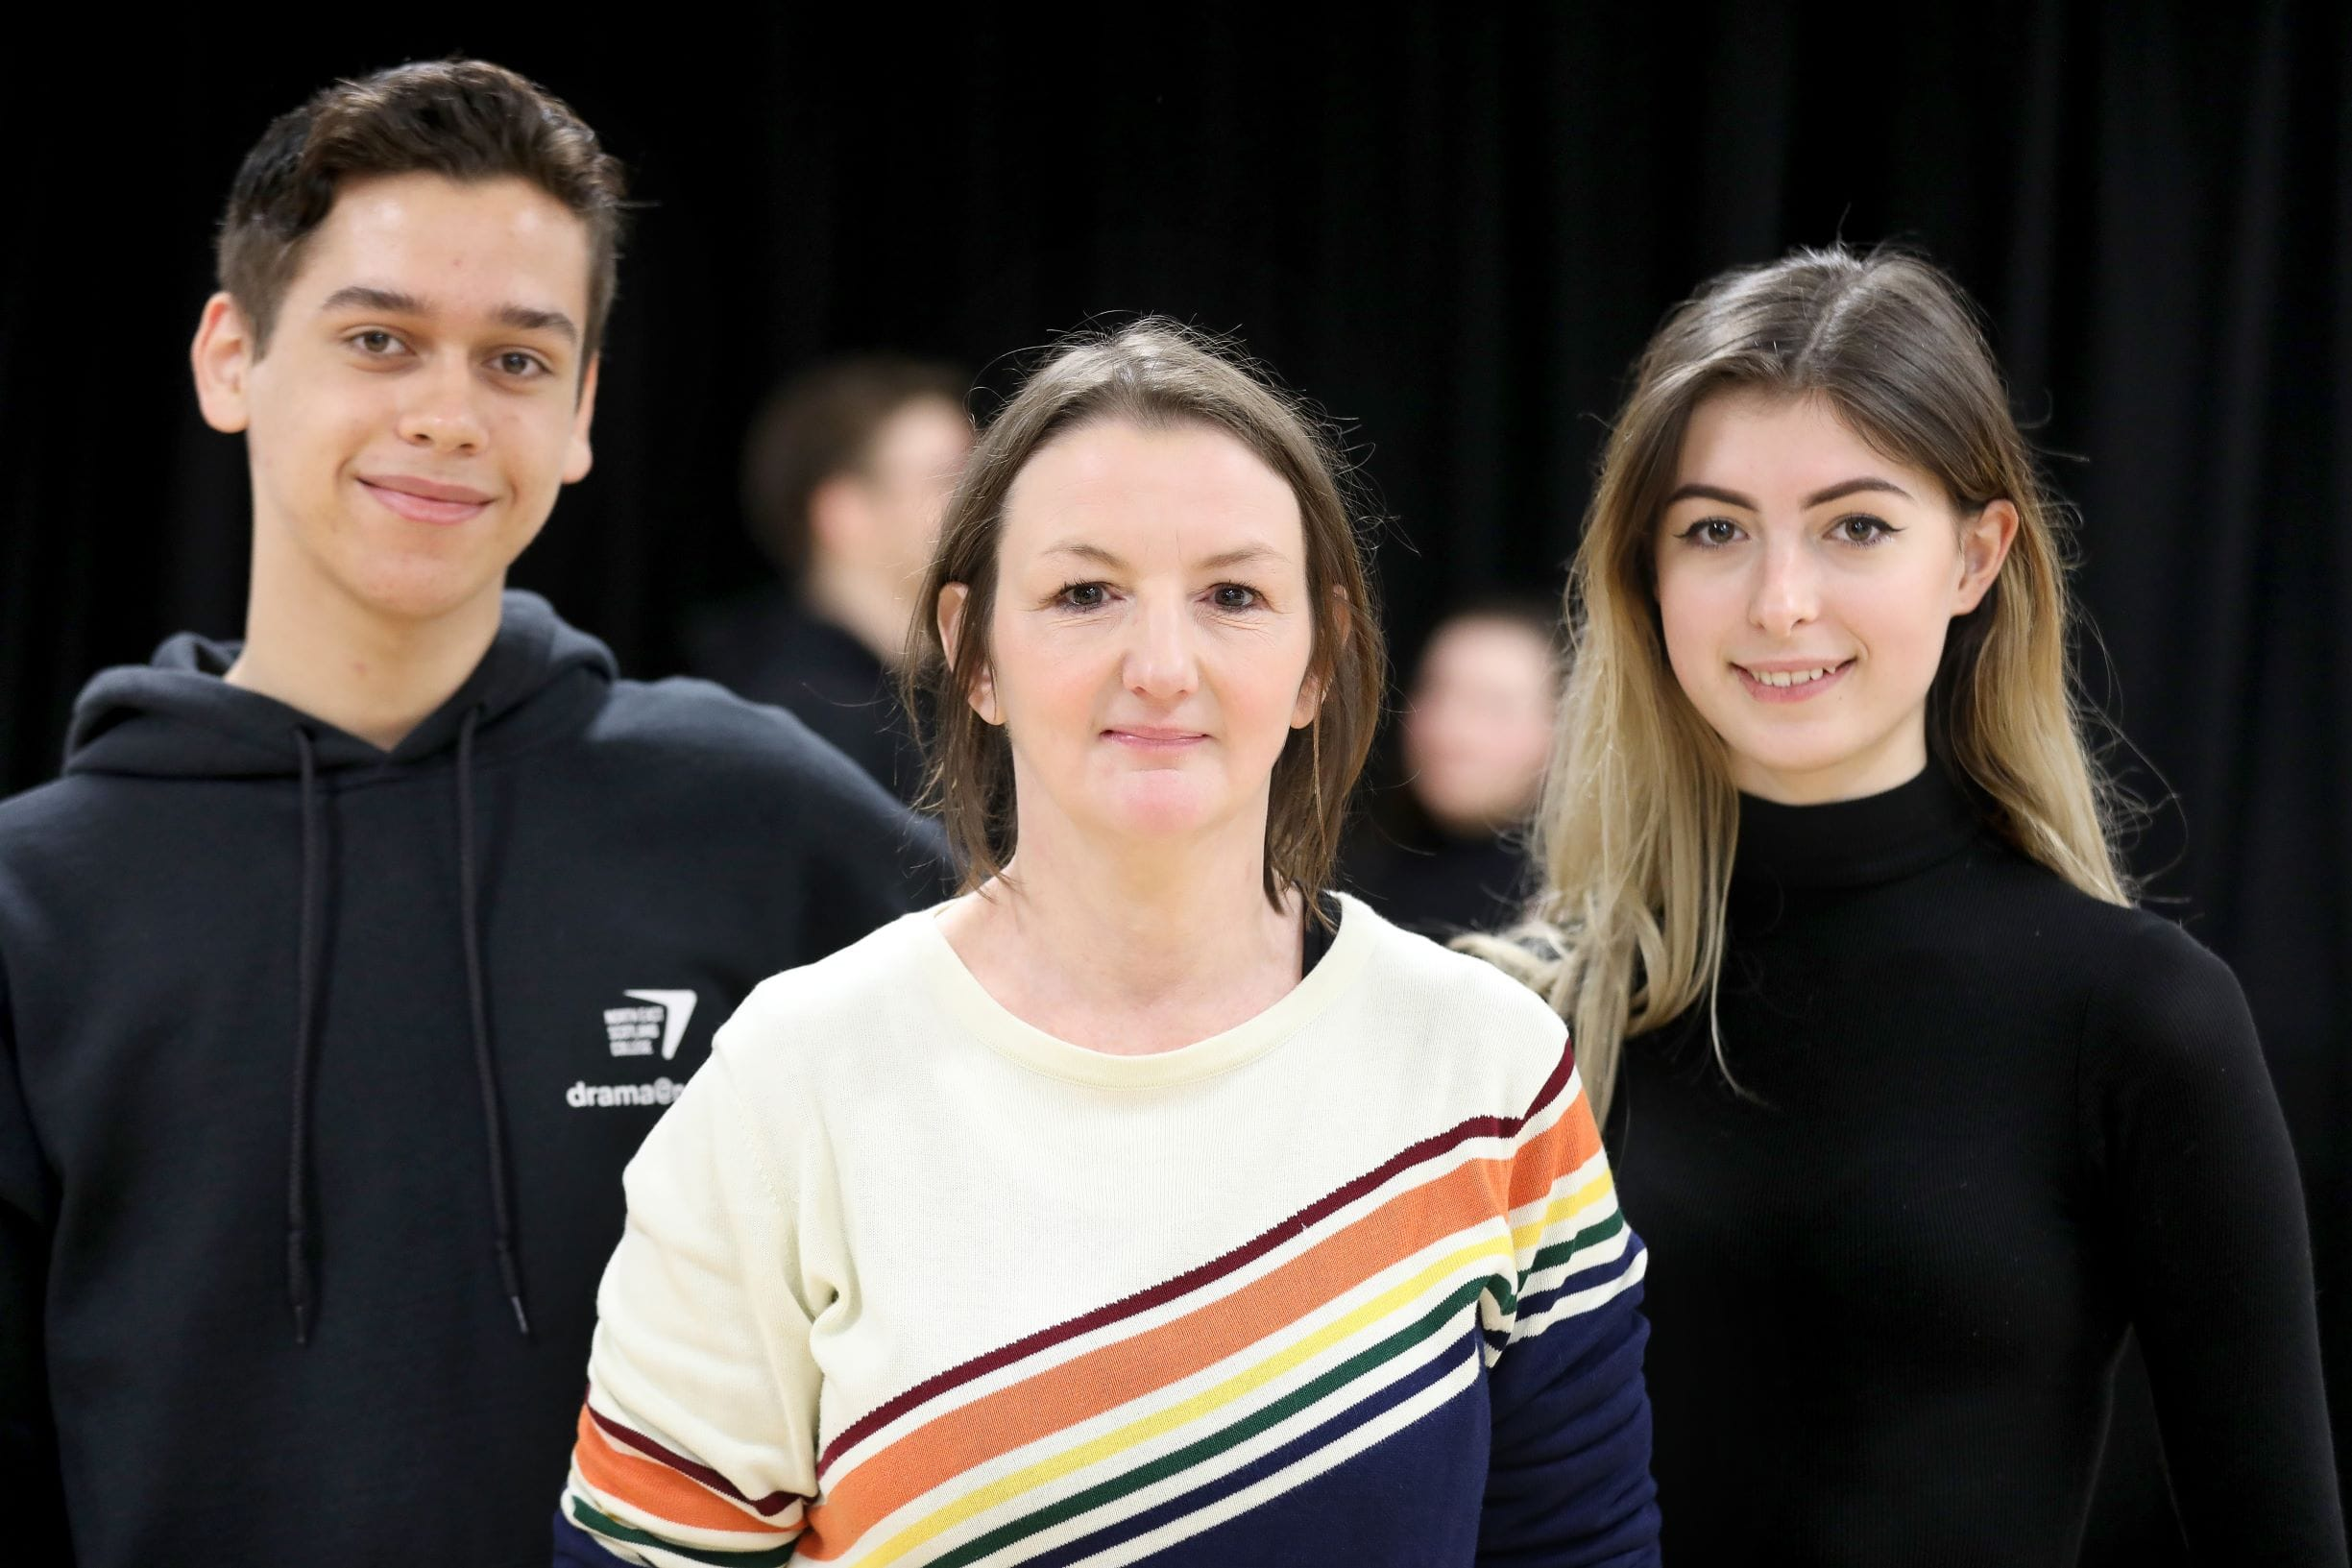 TV Actor puts Students Centre Stage